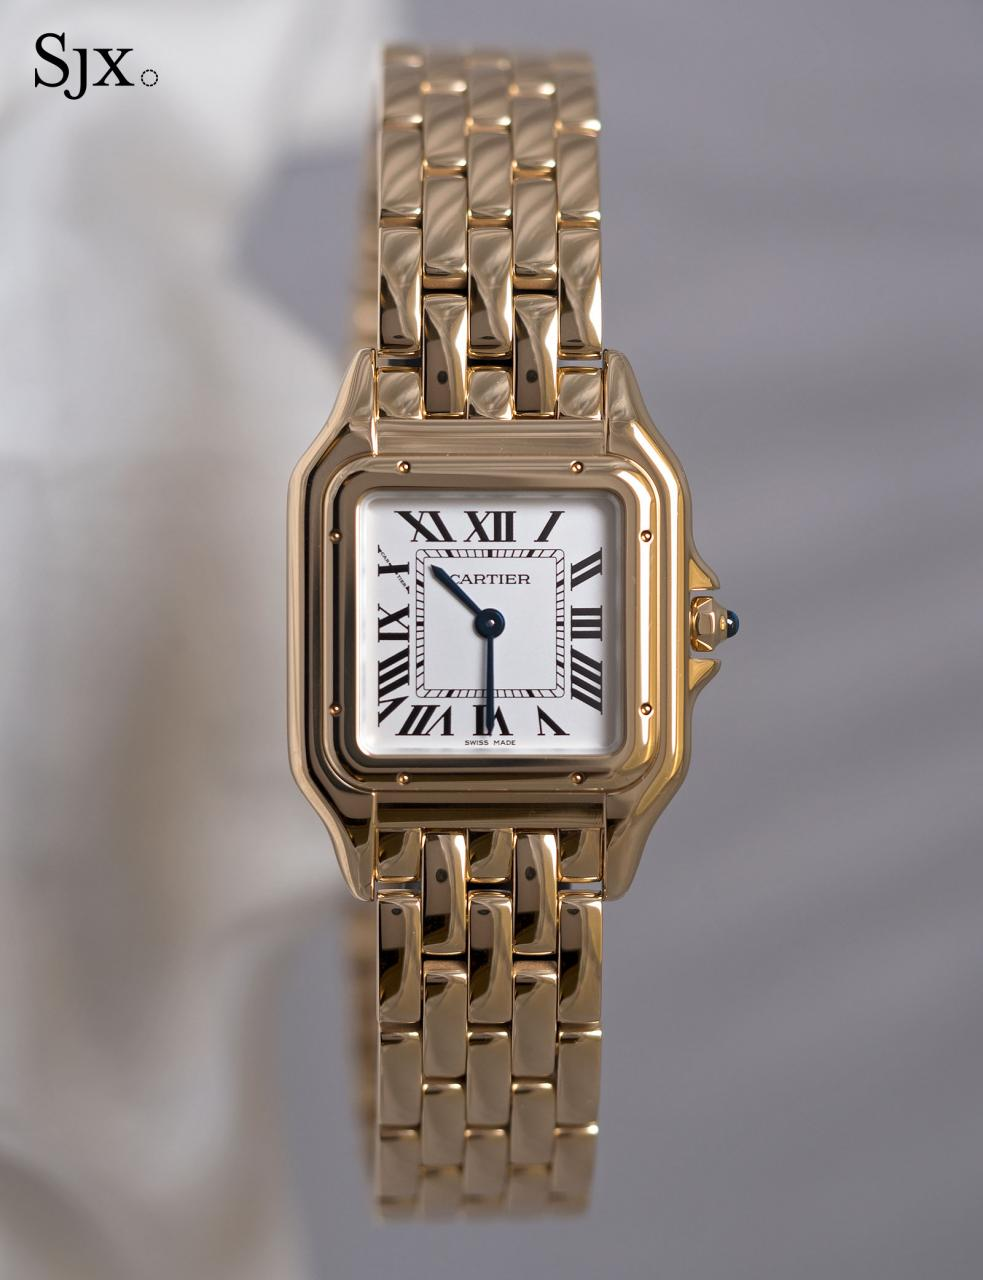 6c768c36fb46f Swiss Replica - Luxury Replica Watches With High Quality